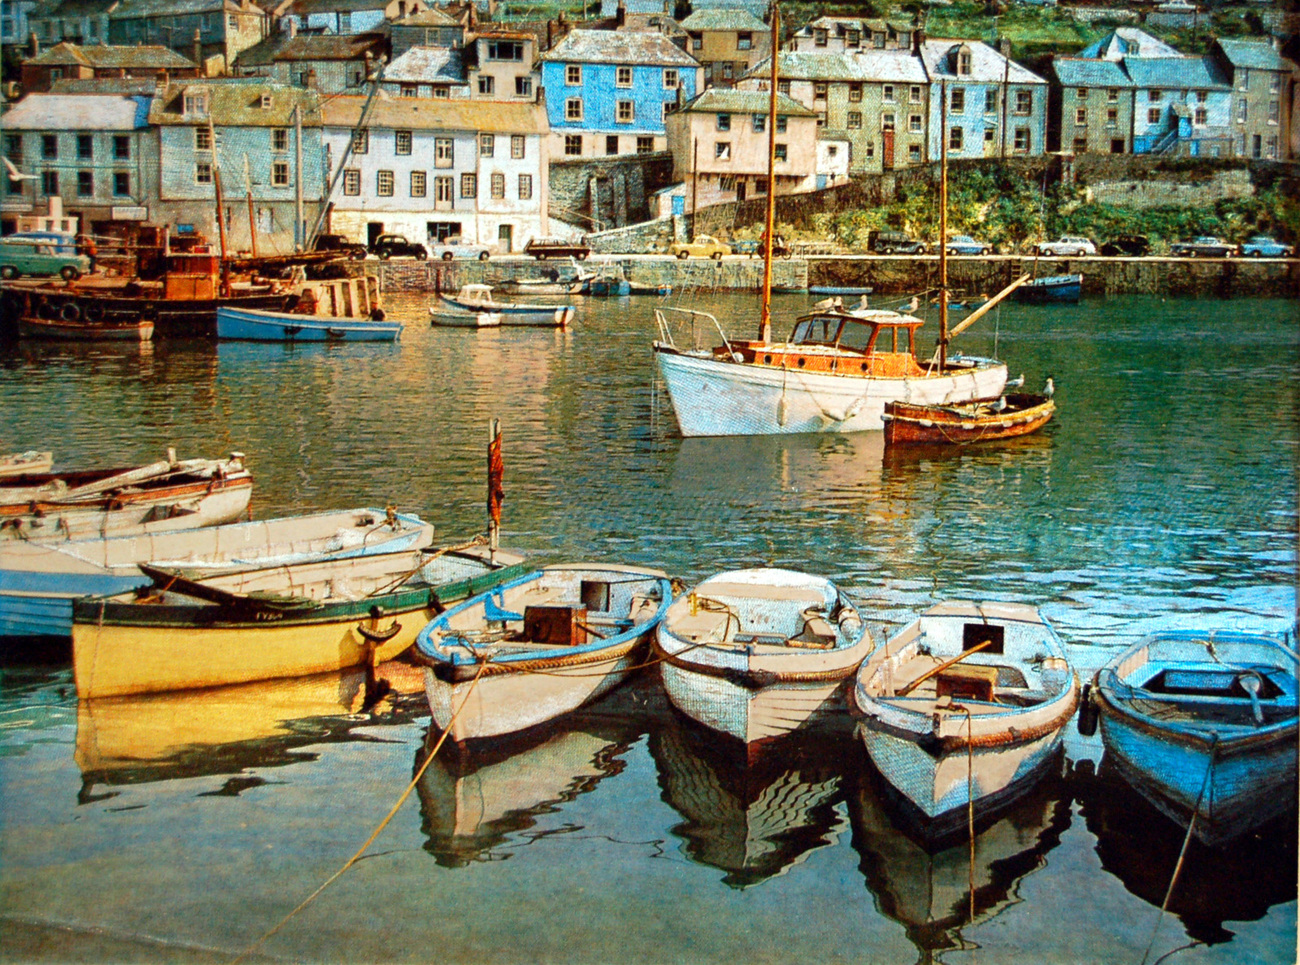 586 74 small boats   mevagissey